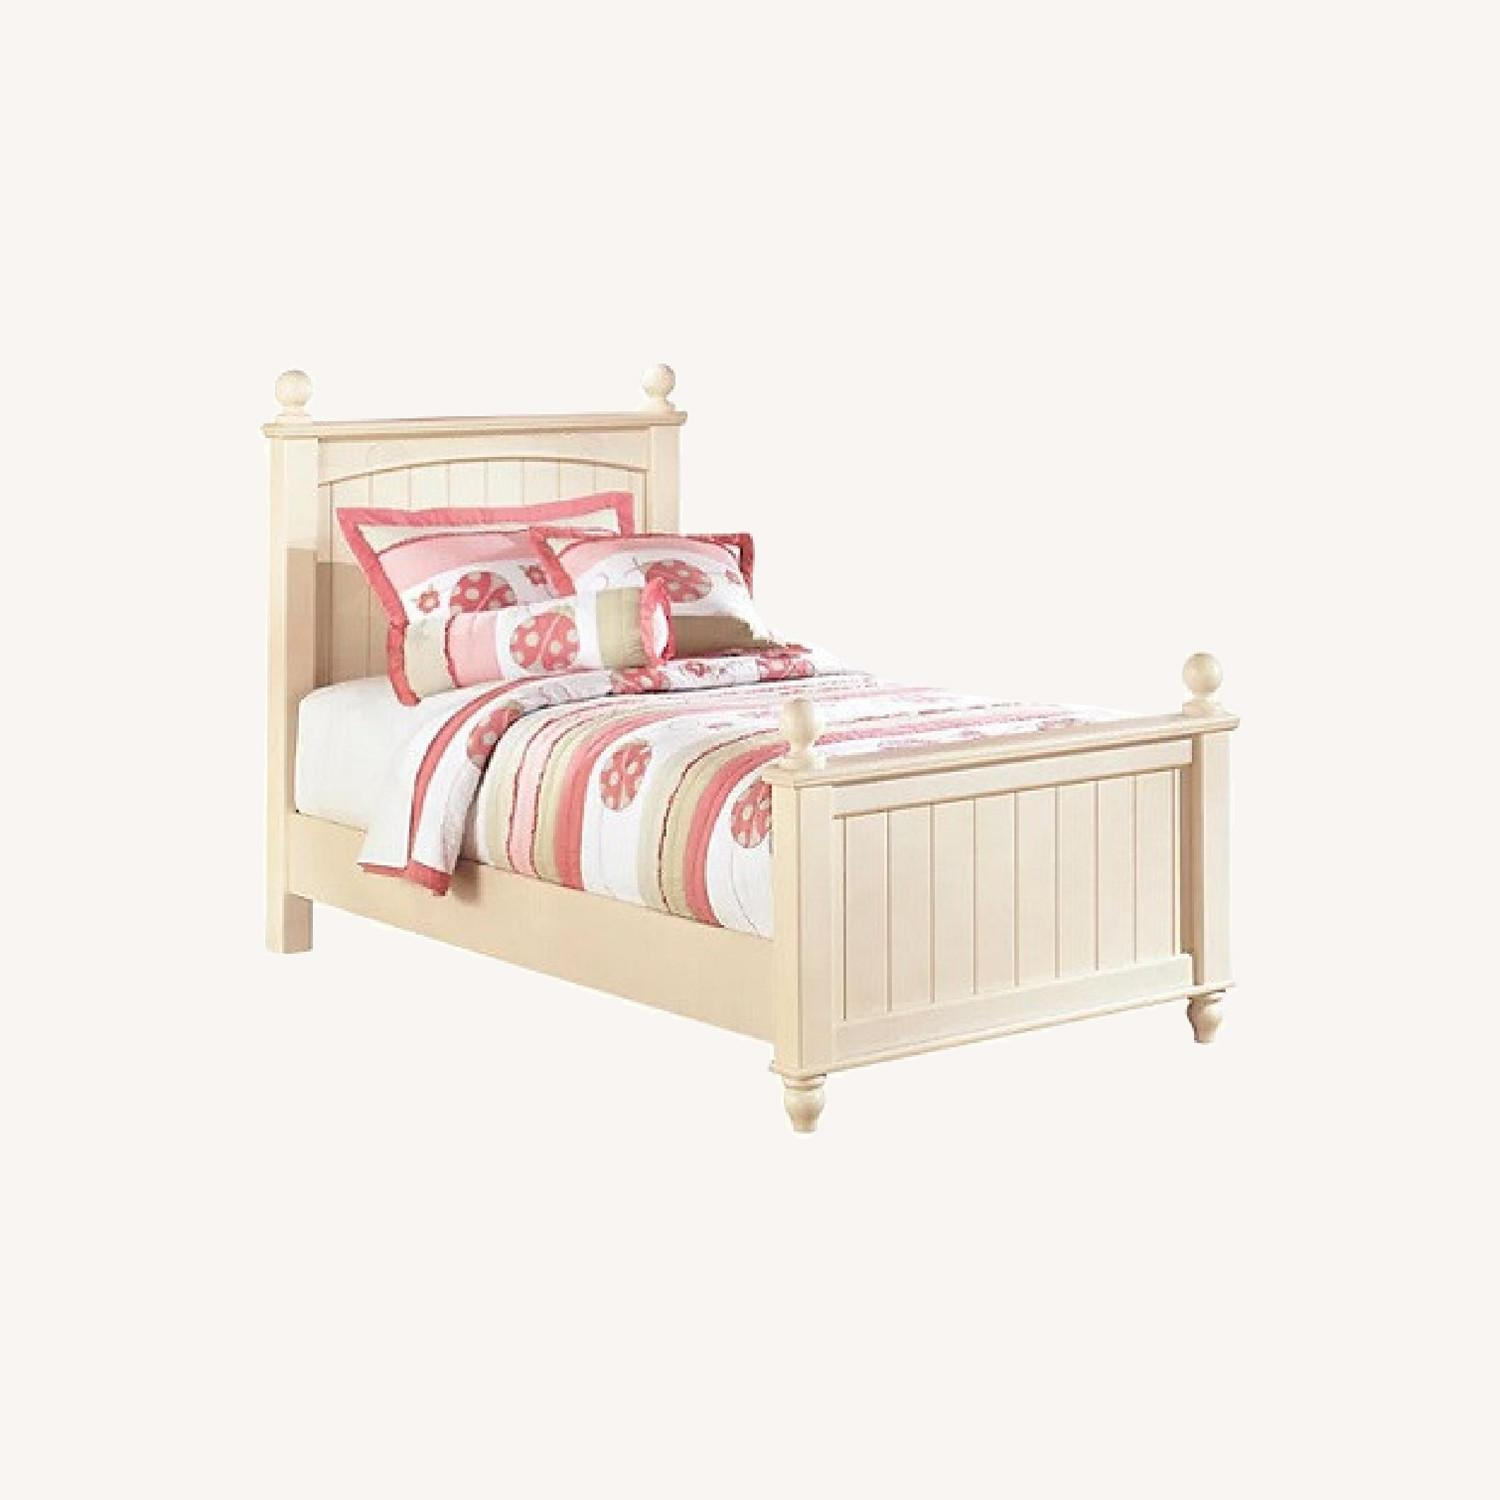 Ashely Furniture Twin Bed Frame - image-0